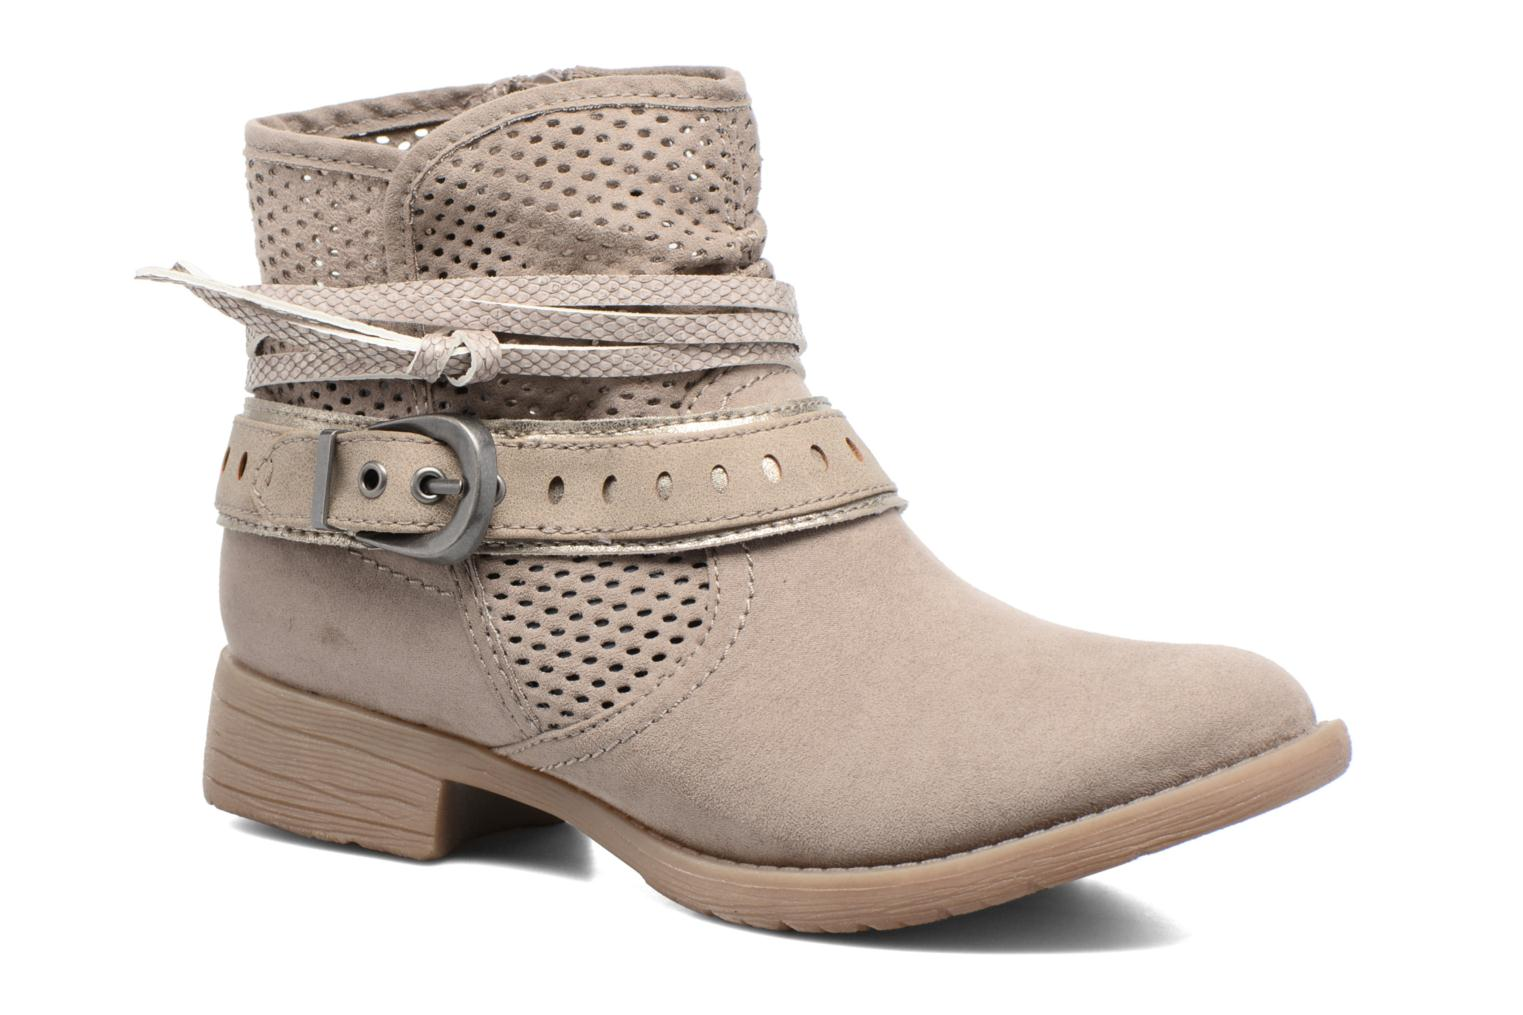 Marques Chaussure femme Jana shoes femme Nani Litght Taupe